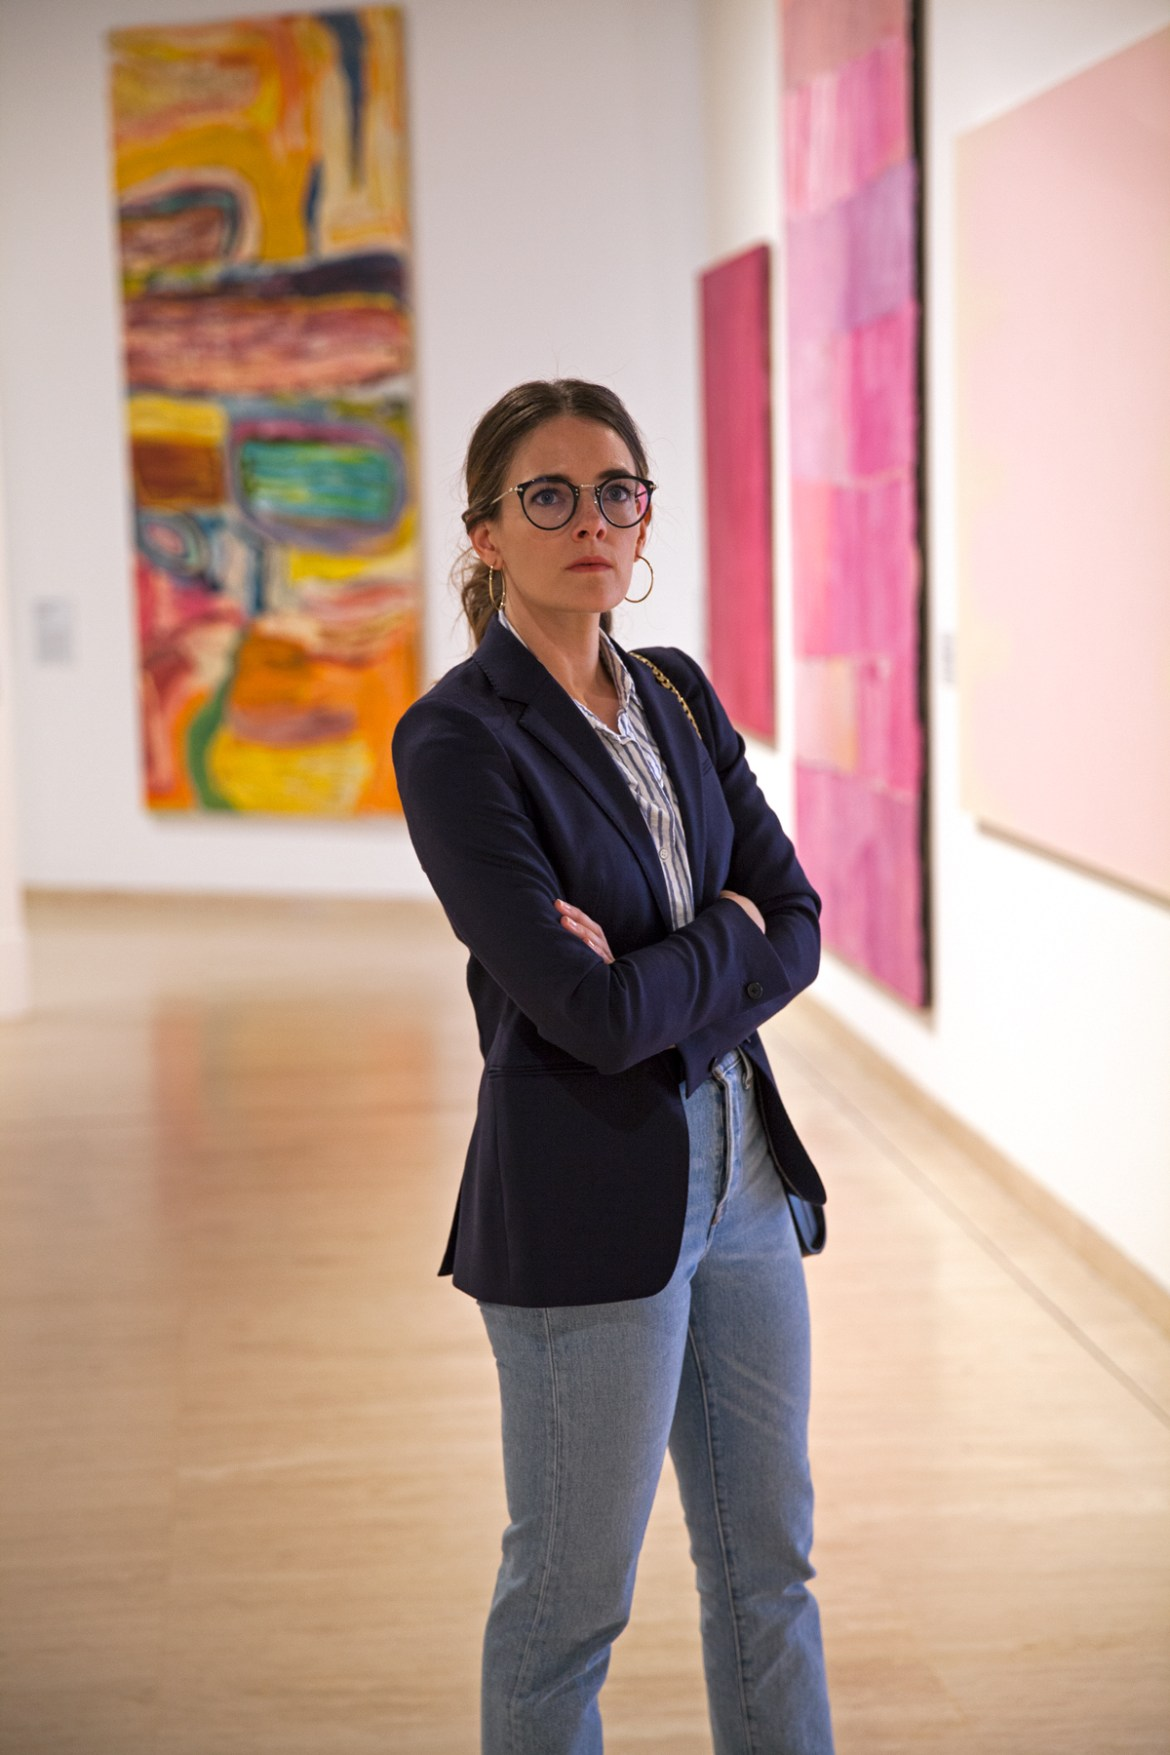 Essilor Transitions® Colours Lenses worn with navy blazer by Inspiring Wit blogger Jenelle at the Art Gallery of WA